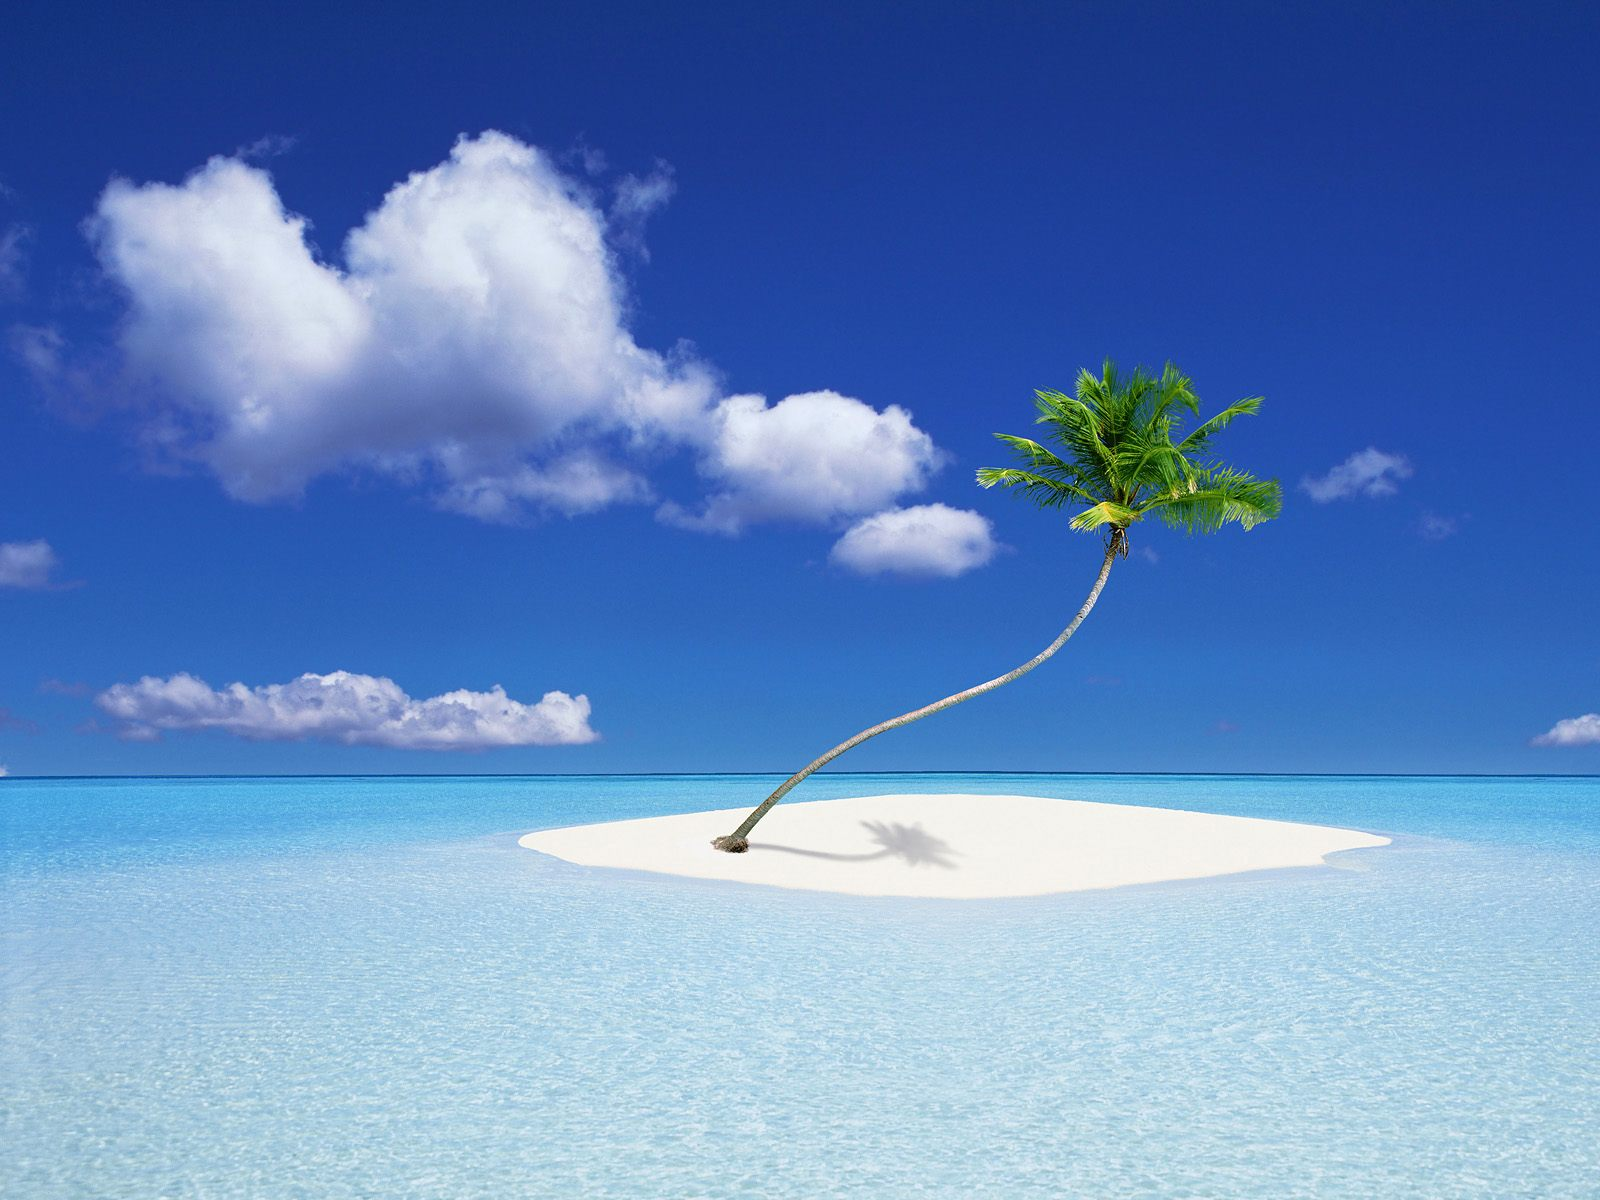 1600x1200 Island holiday desktop wallpapers and stock photos